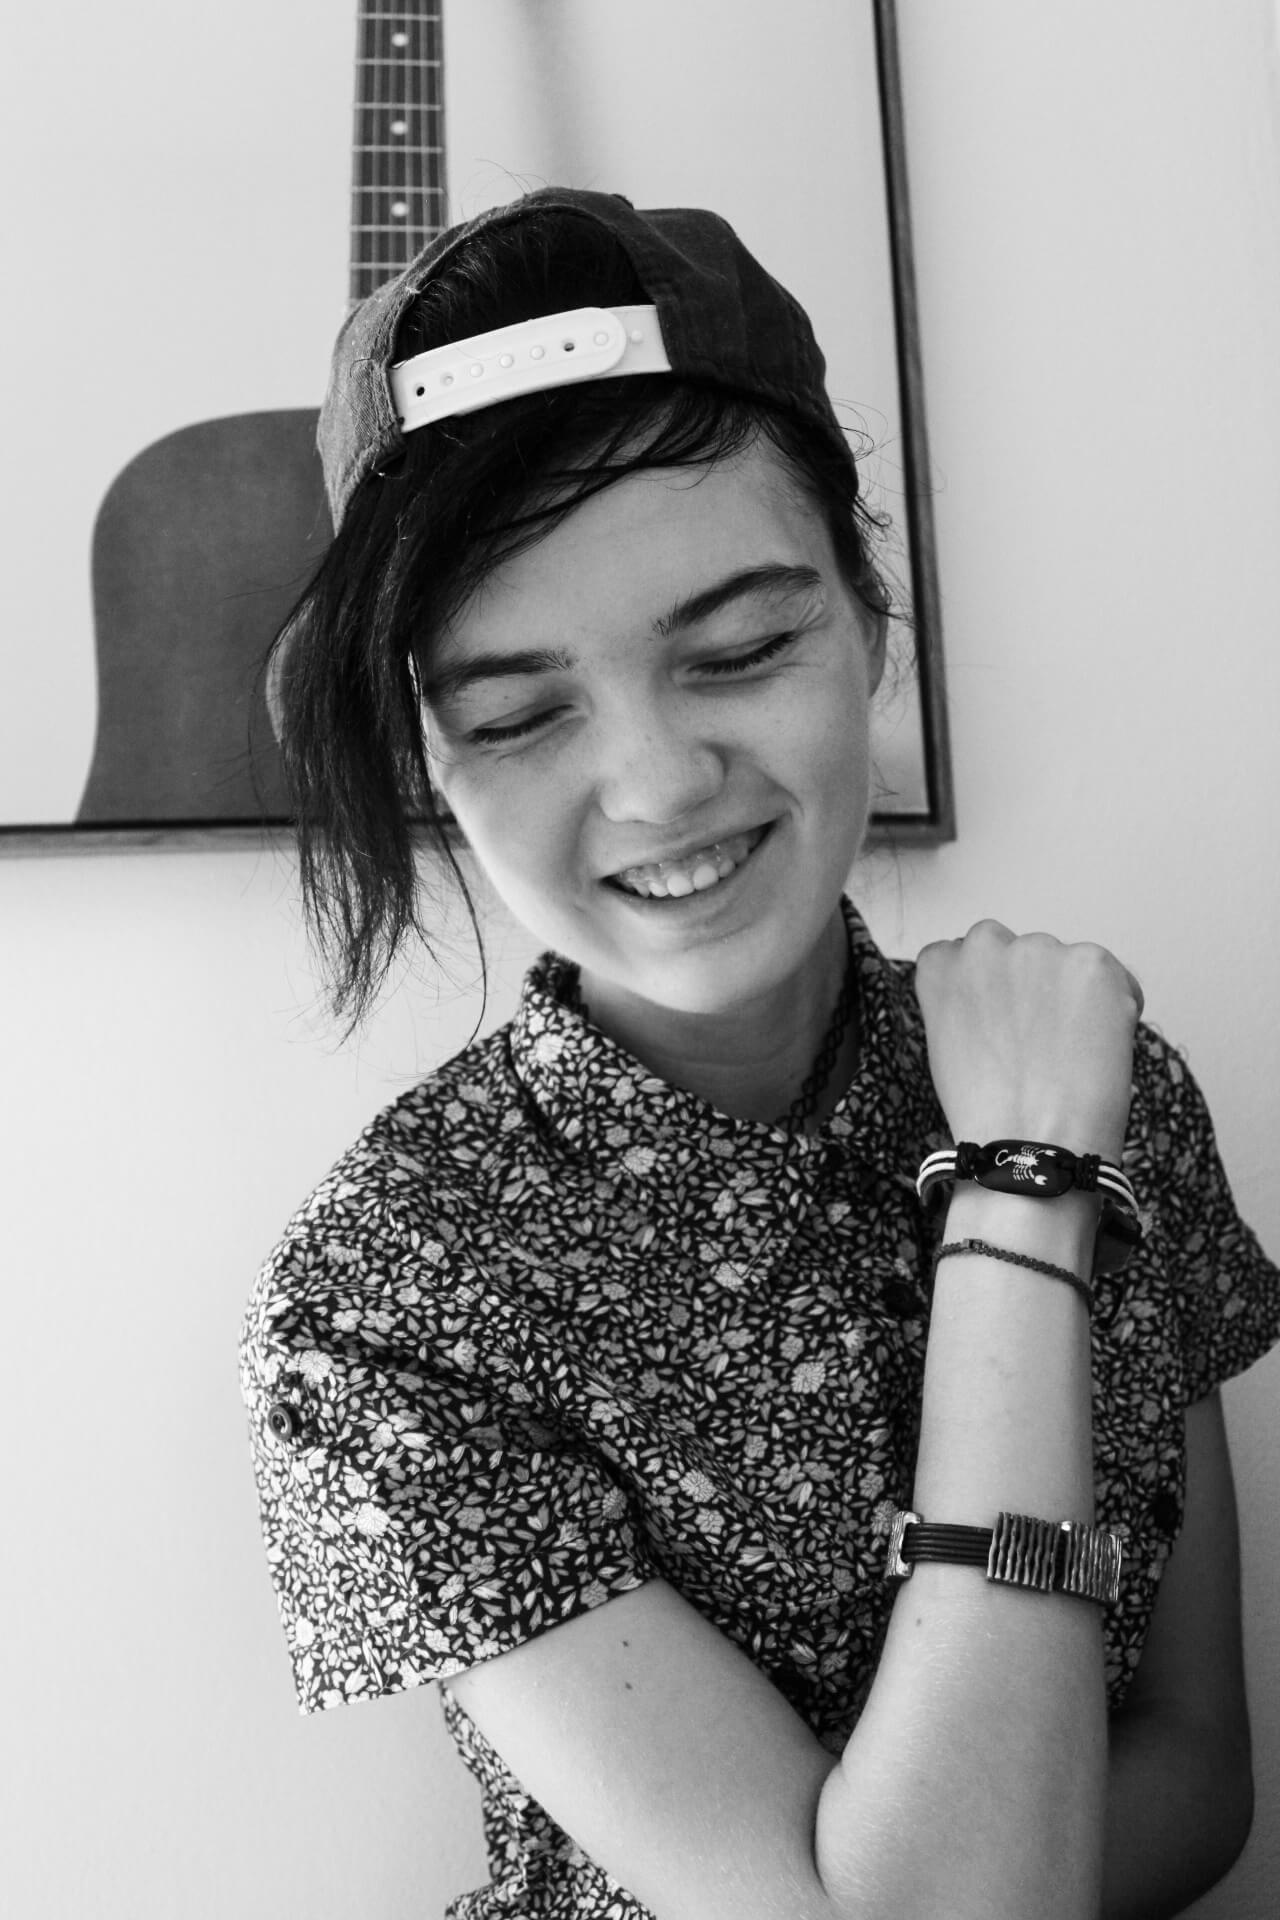 Beautiful black and white portrait of young photographer Beth Nighthowler @_nighthowler__ laughing